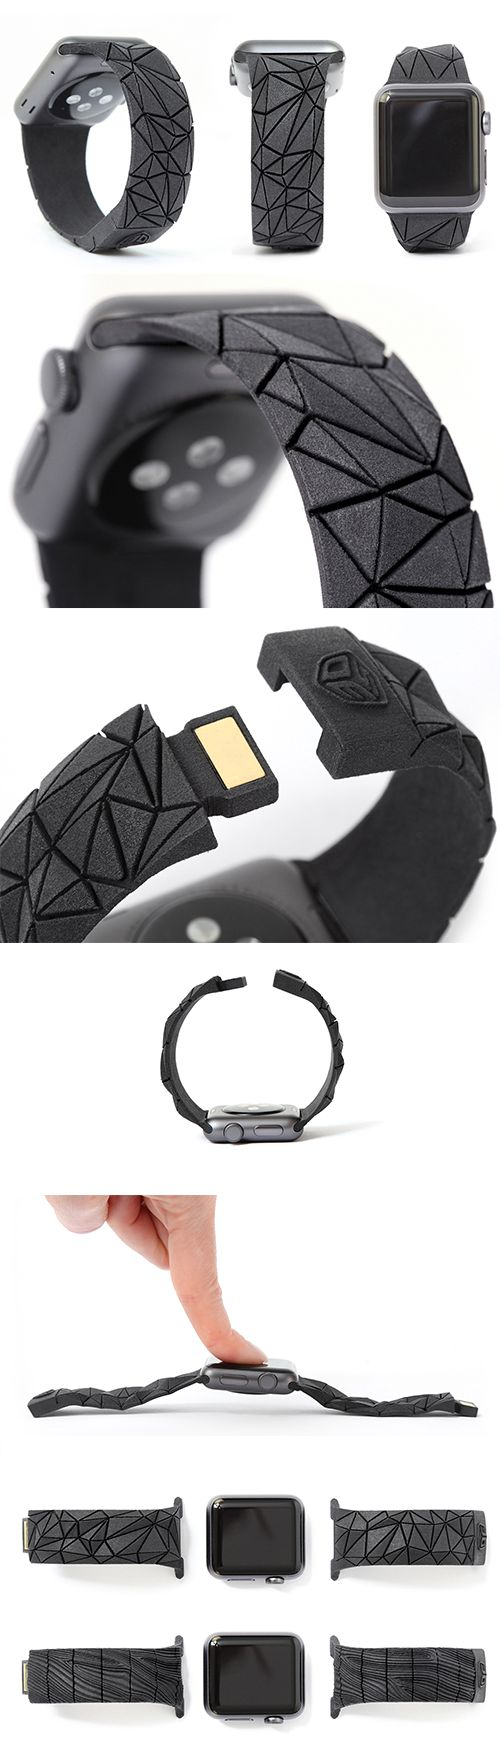 3D Printed Flex Bands for Apple Watch designed by Maria Cichy //